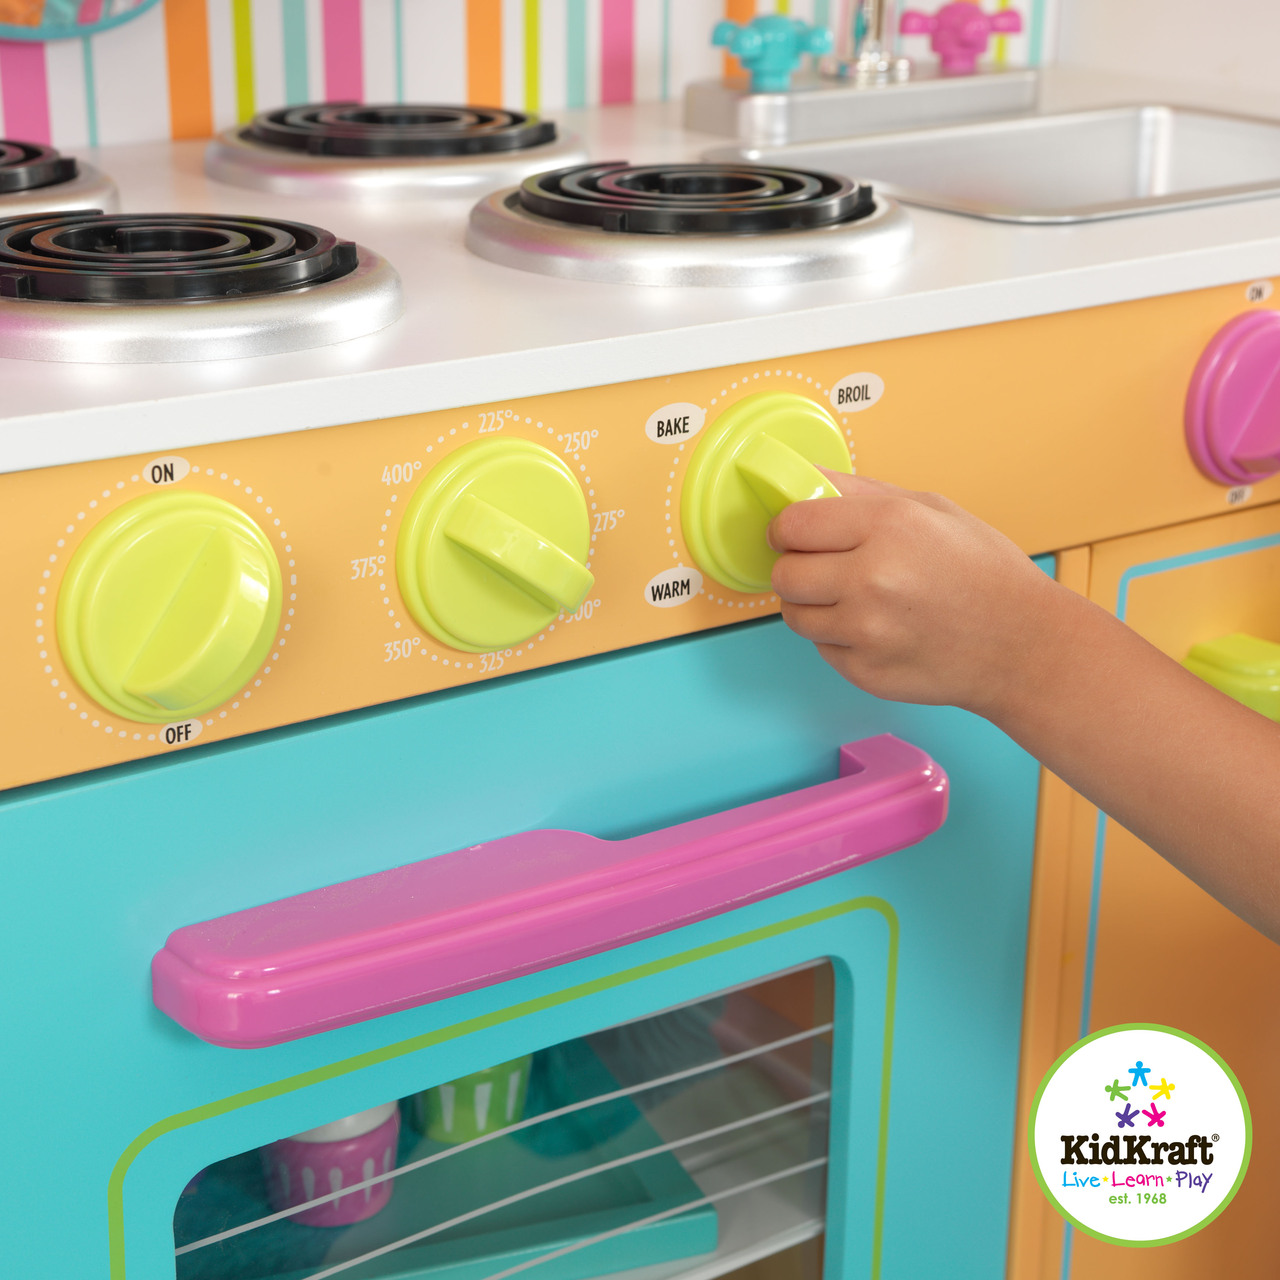 KidKraft Deluxe Big U0026 Bright Kitchen